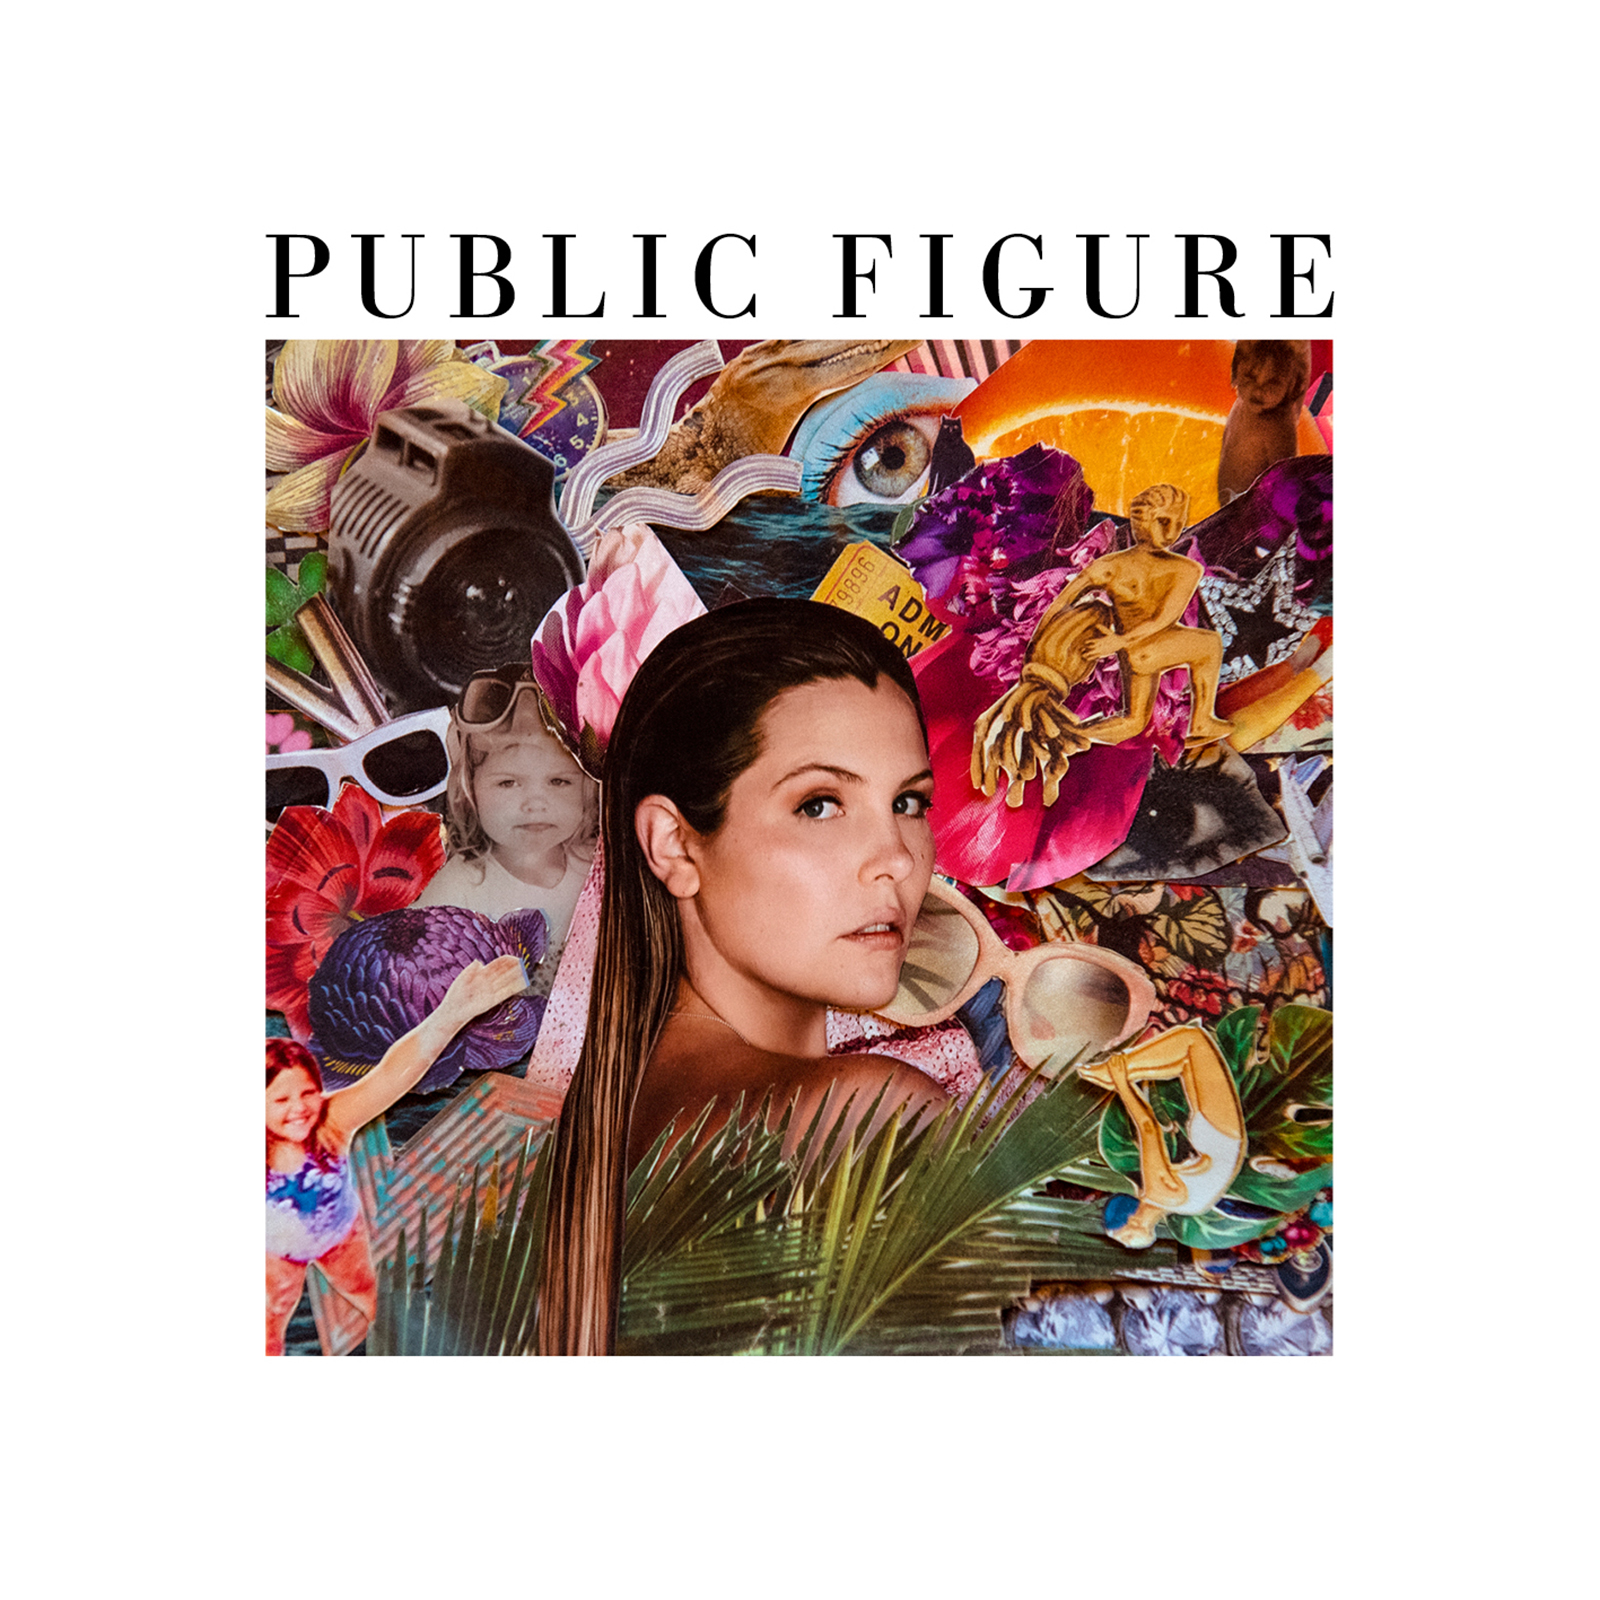 Public Figure Album Art Collage by V Blackburn